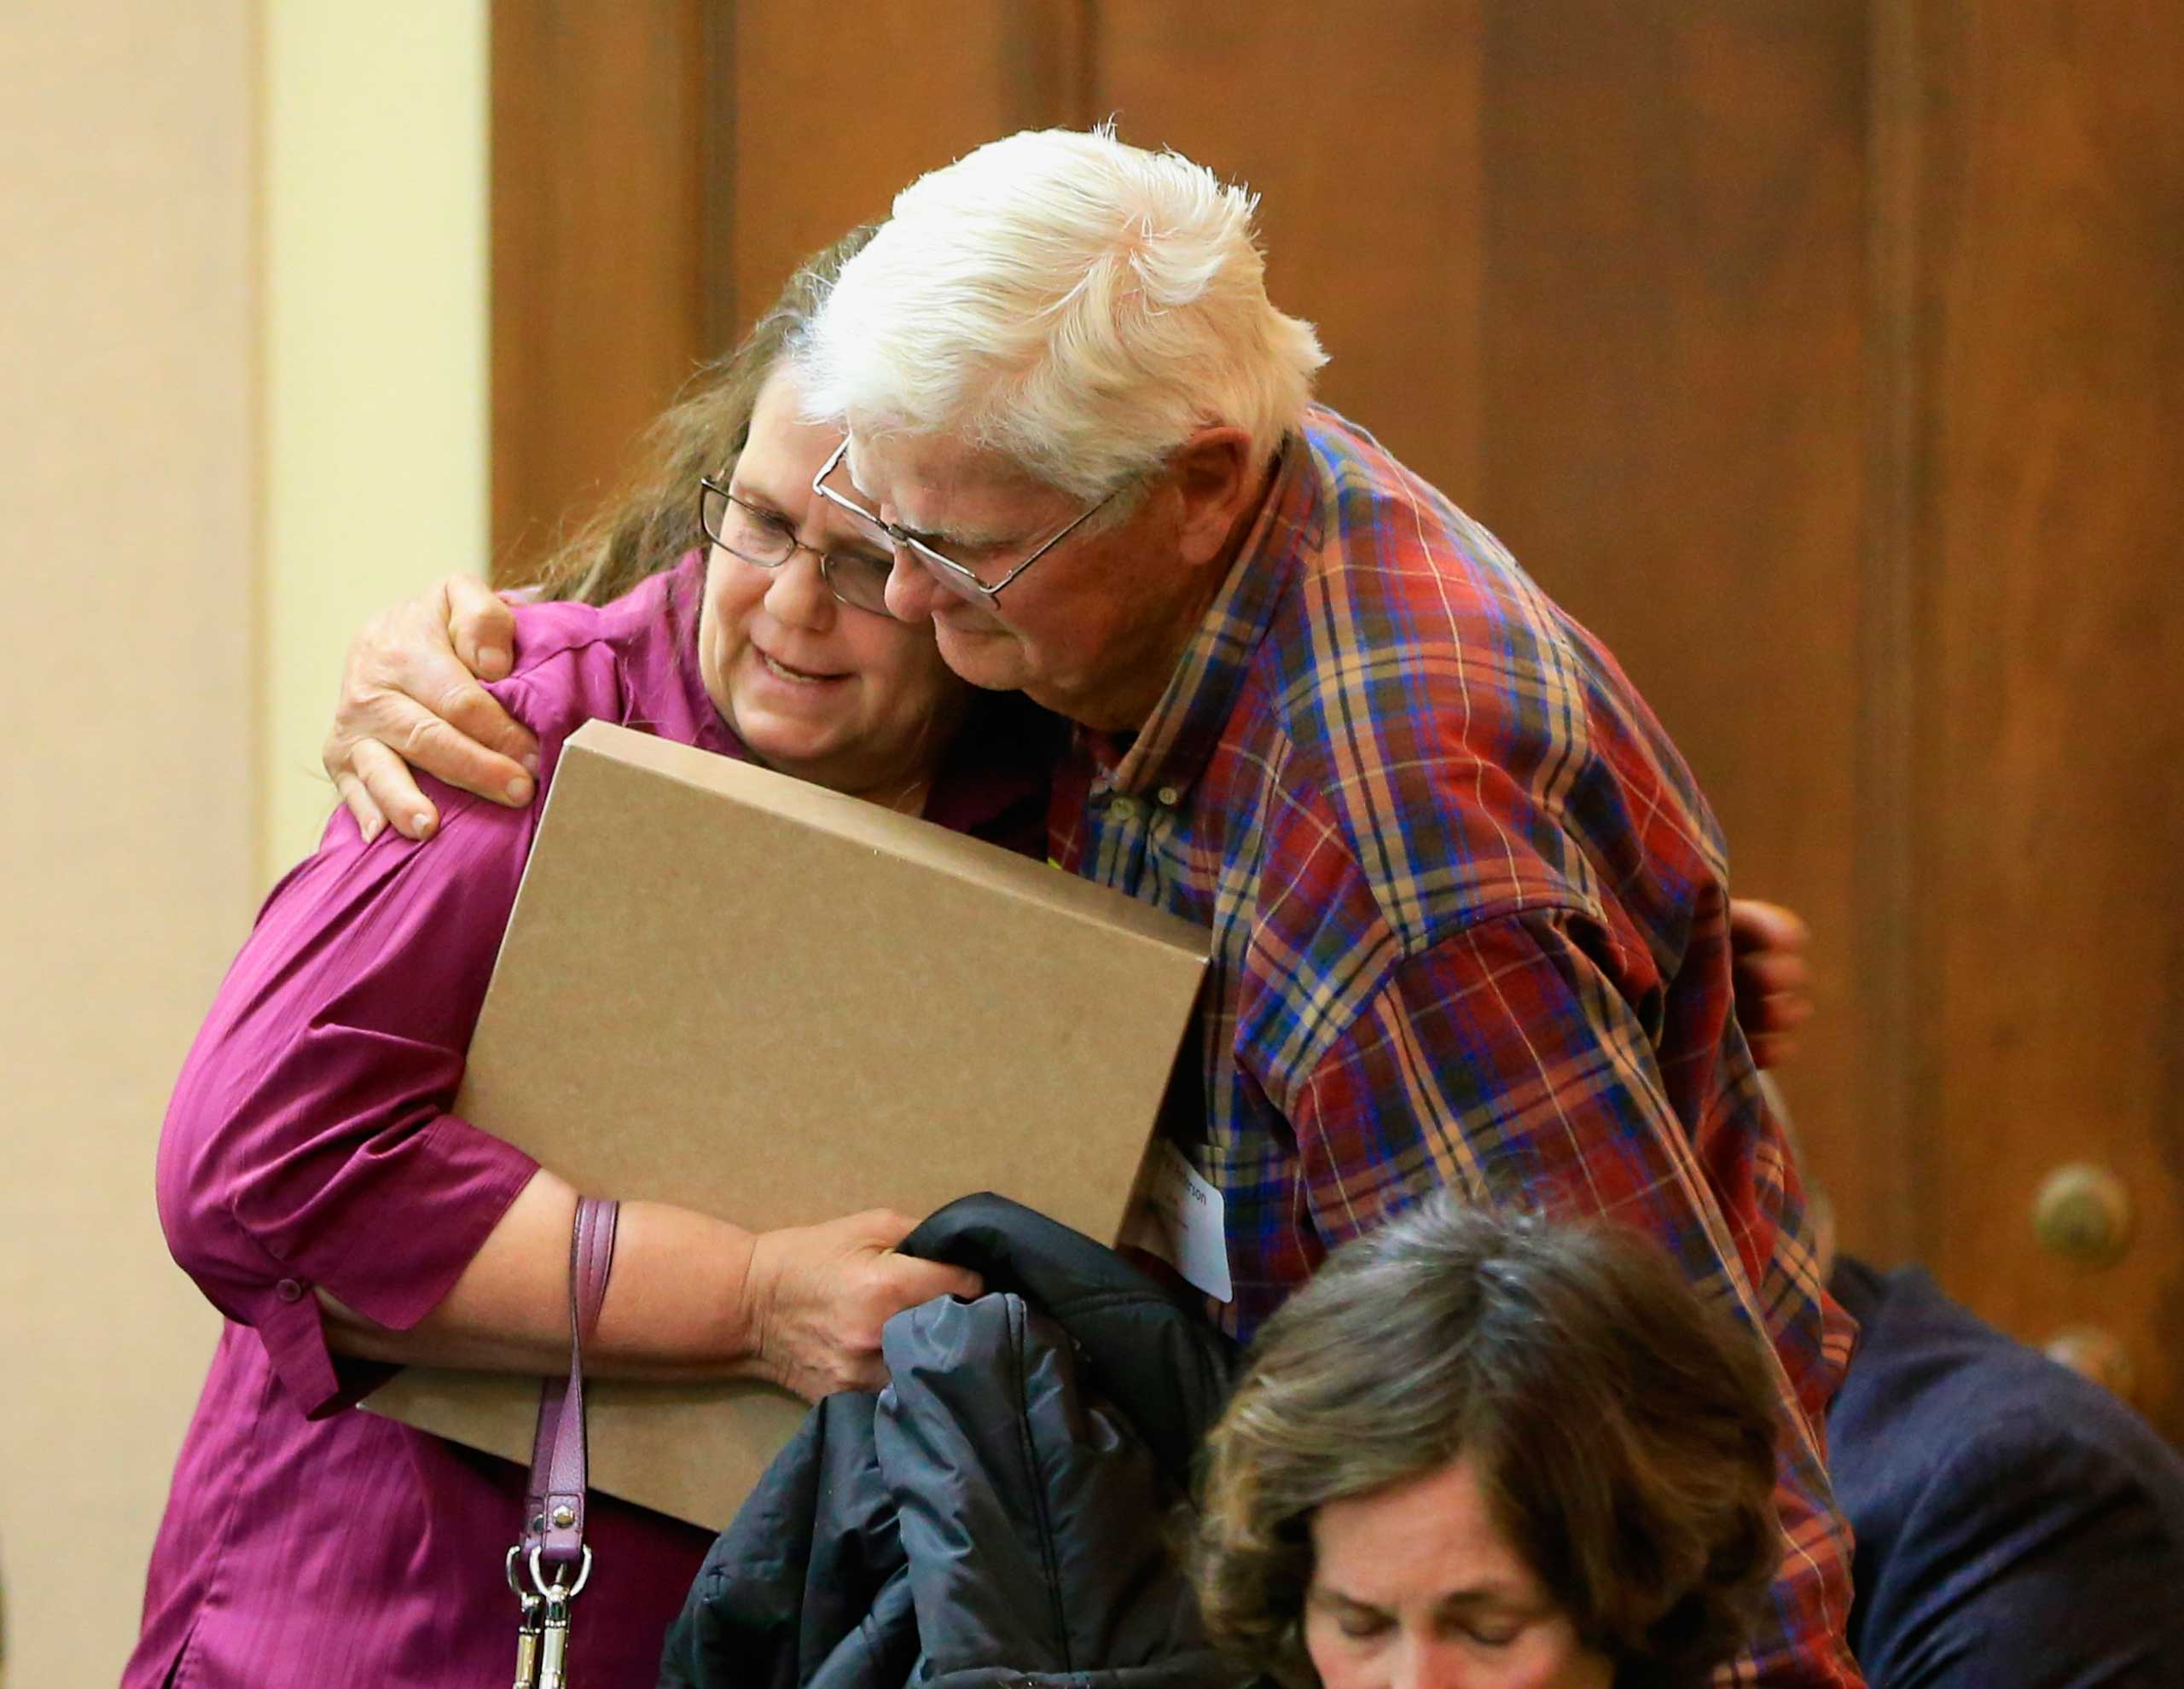 Miriam Thimm Kelle, left, whose brother James Thimm was tortured and killed on a southeast Nebraska farm in 1985, is hugged by Byron Peterson of Scottsbluff, after she testified in favor of a law proposal to change the death penalty to life imprisonment without parole, during a hearing before the Judiciary Committee in Lincoln, Neb., March 4, 2015.